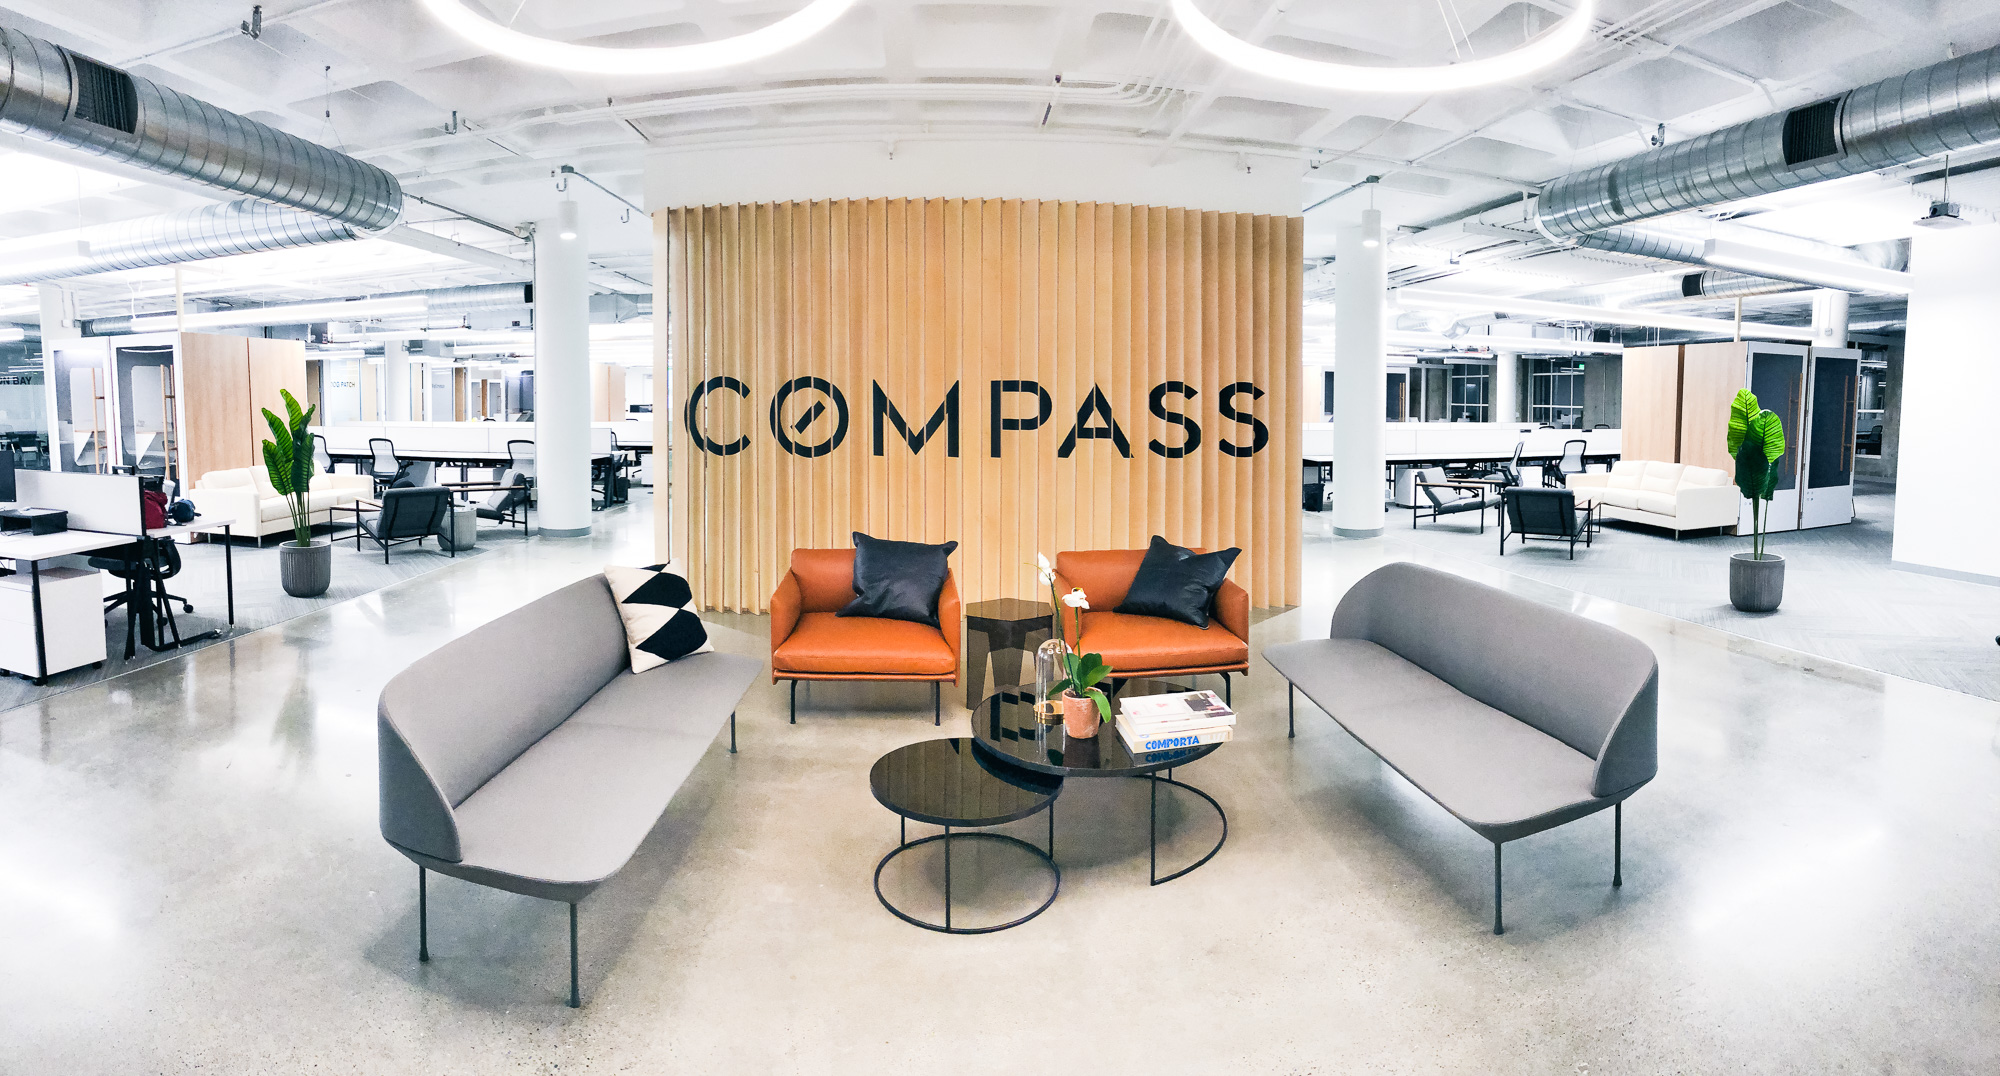 Optical-illusion, multi panel wood sign / privacy screen at the San Francisco office of Compass, a modern real estate platform.Optical-illusion, multi panel wood sign / privacy screen at the San Francisco office of Compass, a modern real estate platform.